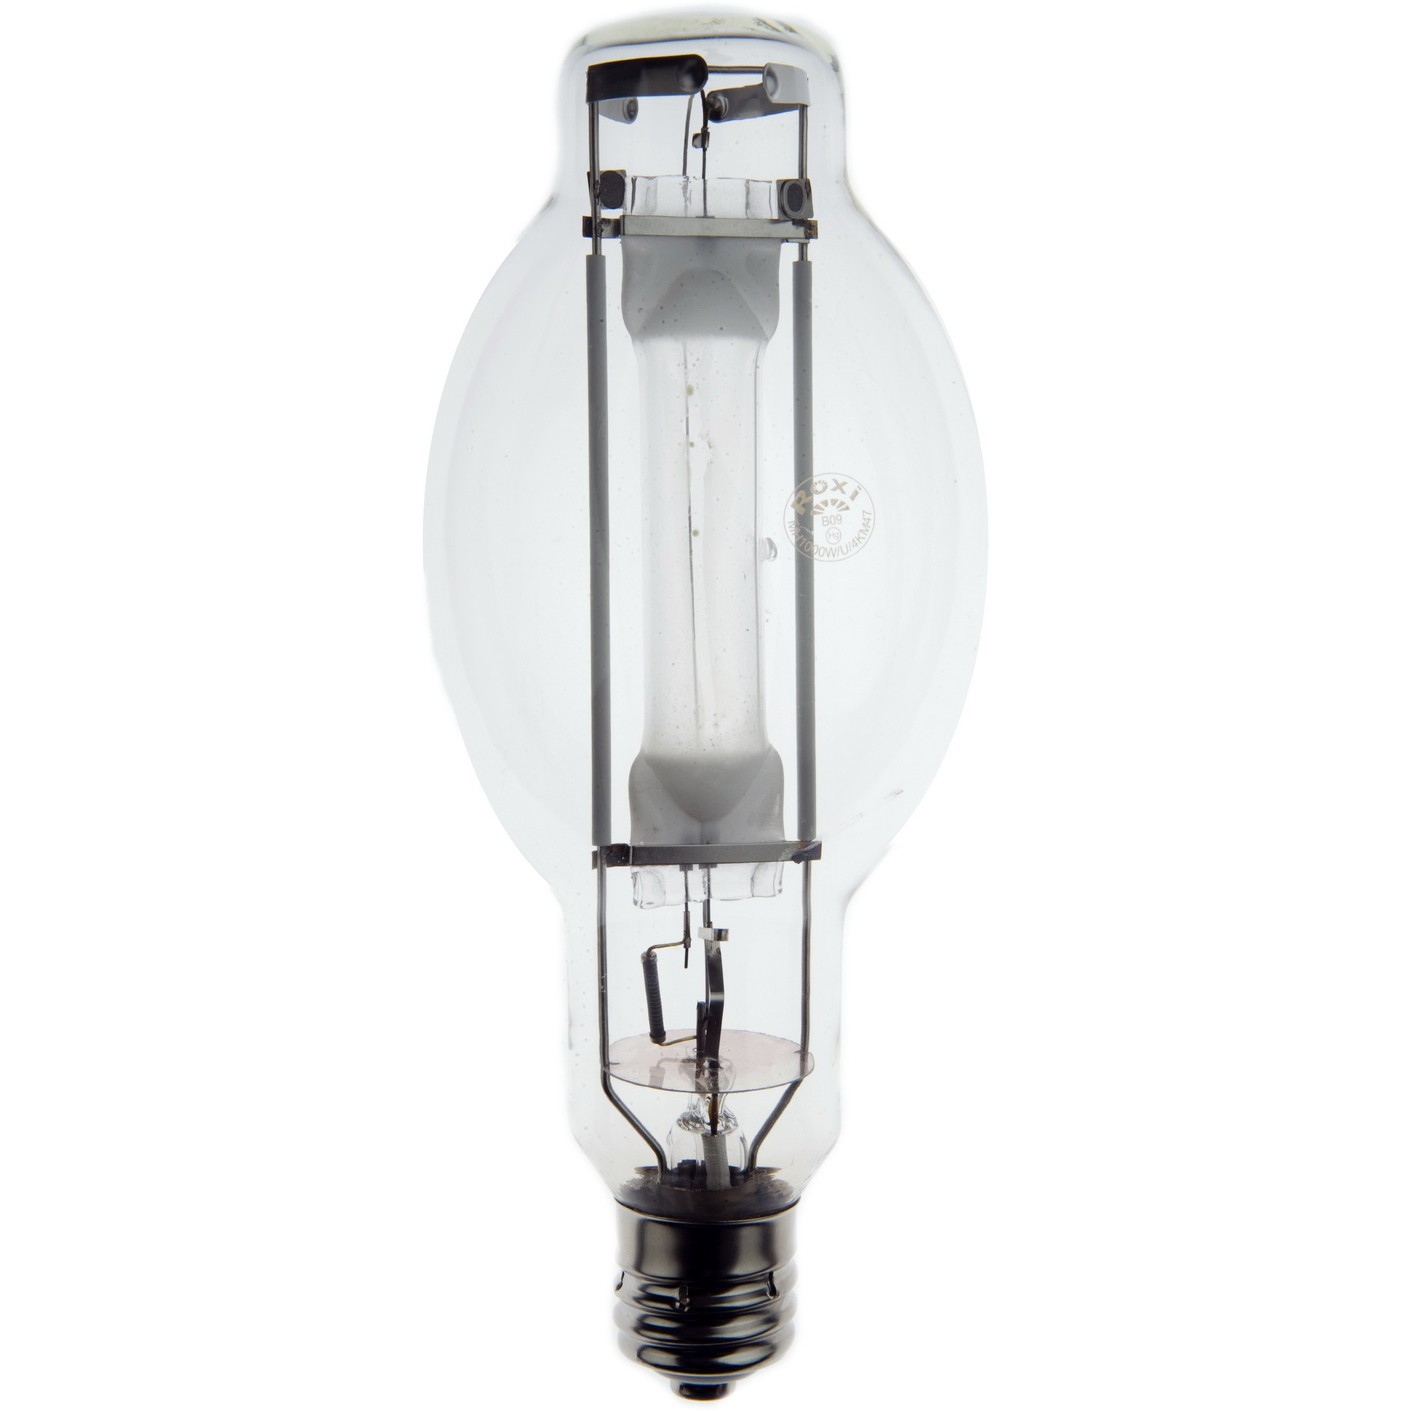 ROXI 1028 - 1000W Metal Halide - BT37 Small Envelop Clear